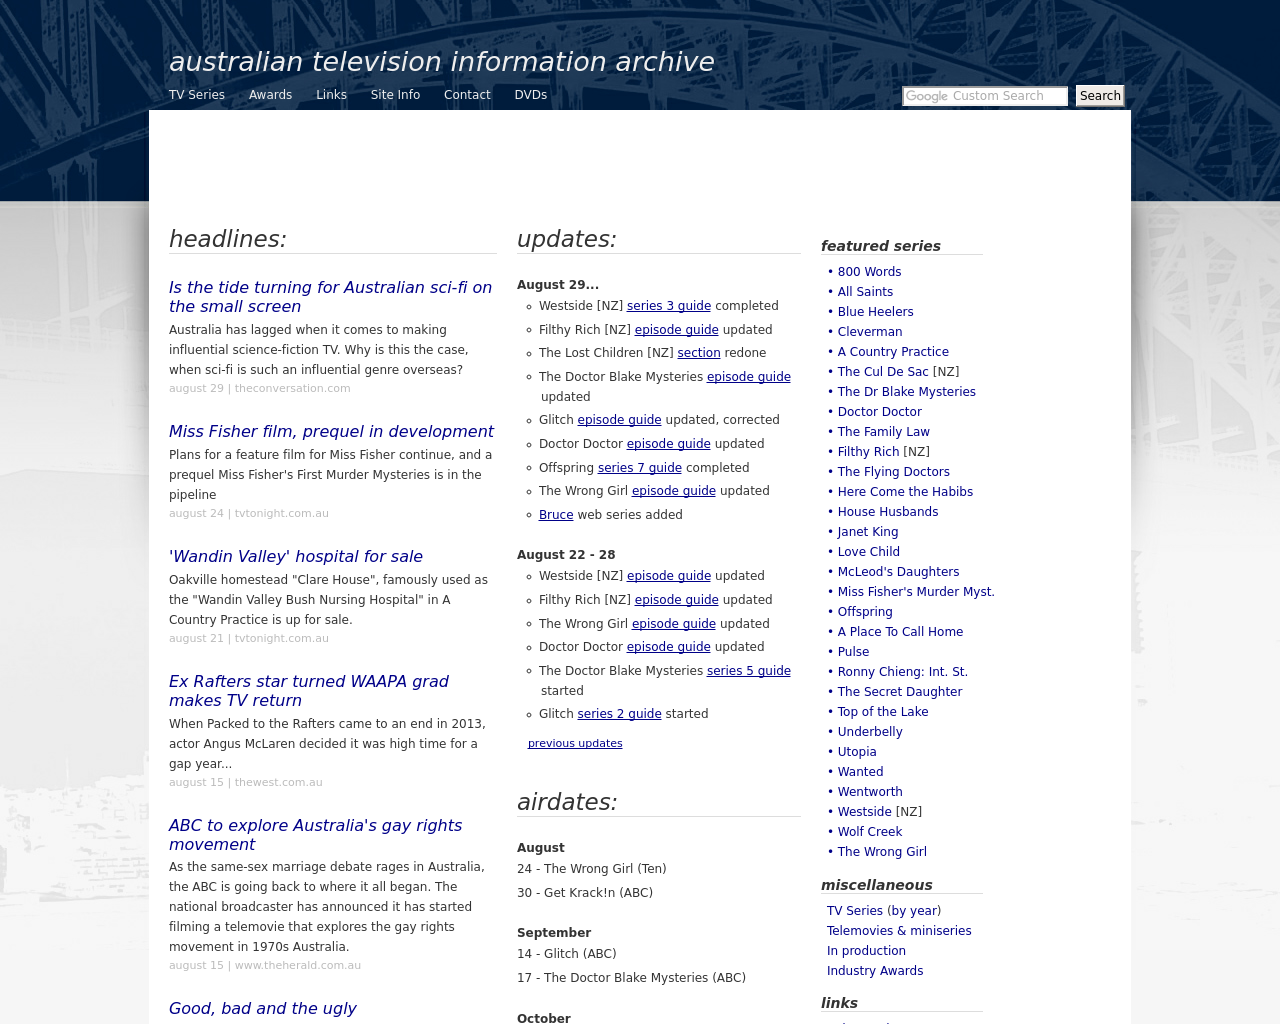 Australian-Television-Information-Archive-Advertising-Reviews-Pricing